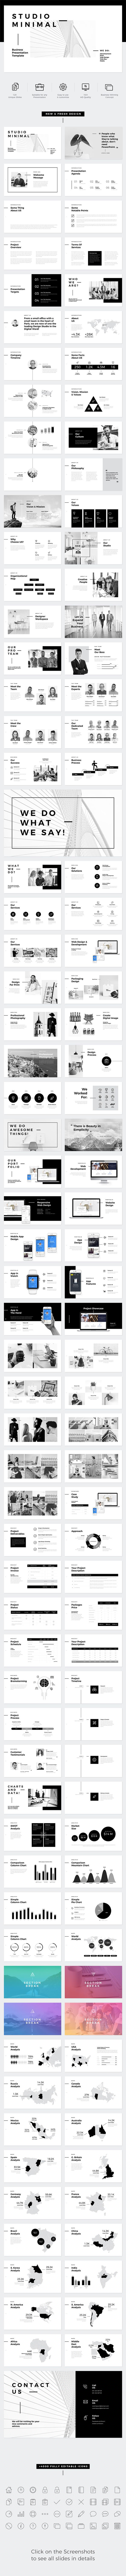 Studio Minimal Presentation PowerPoint Template — Powerpoint PPT #minimal #studio fact sheet • Available here ➝ https://graphicriver.net/item/studio-minimal-presentation-powerpoint-template/20939116?ref=pxcr